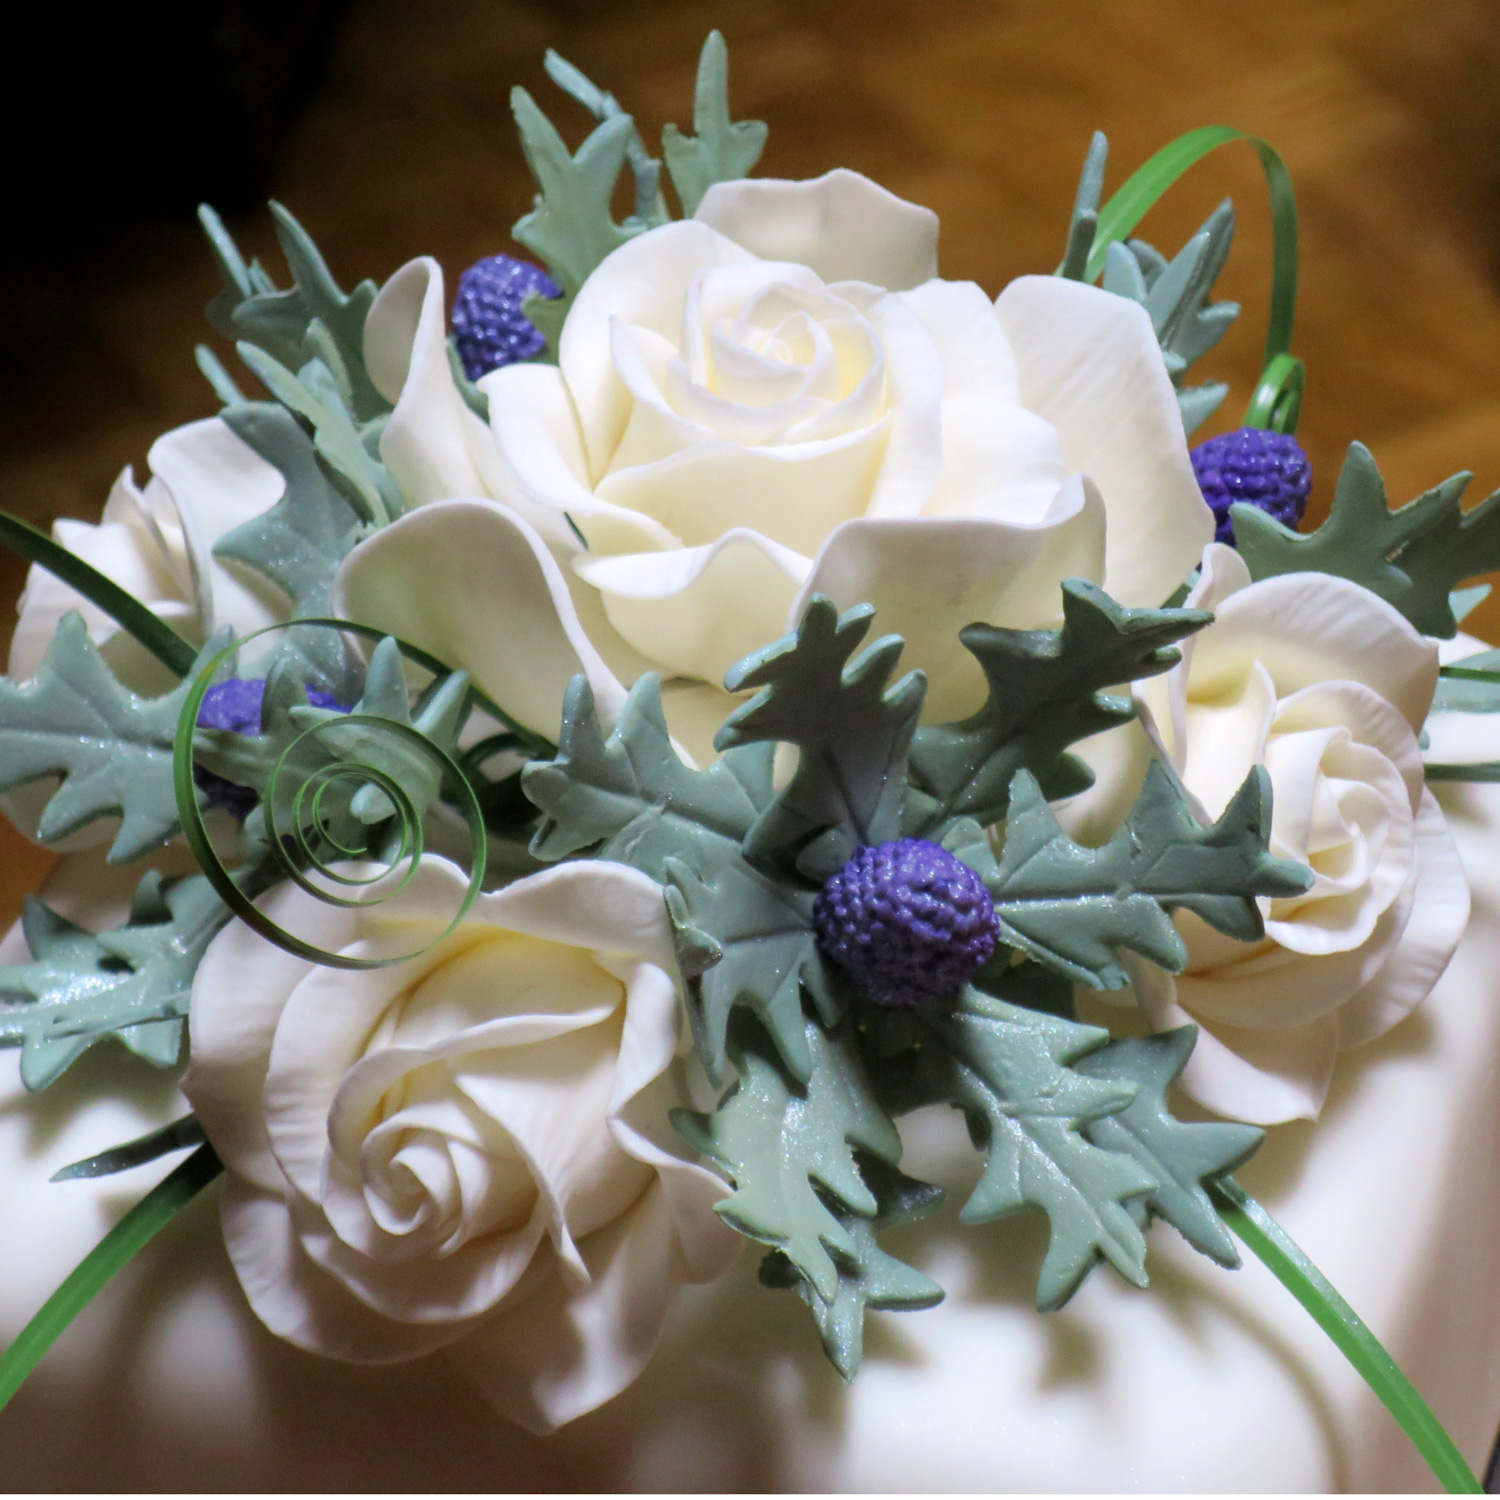 45 Wedding Cakes With Sugar Flowers That Look Stunningly: Sea Holly Thistle Sea Holly Thistles For Scottish Themed